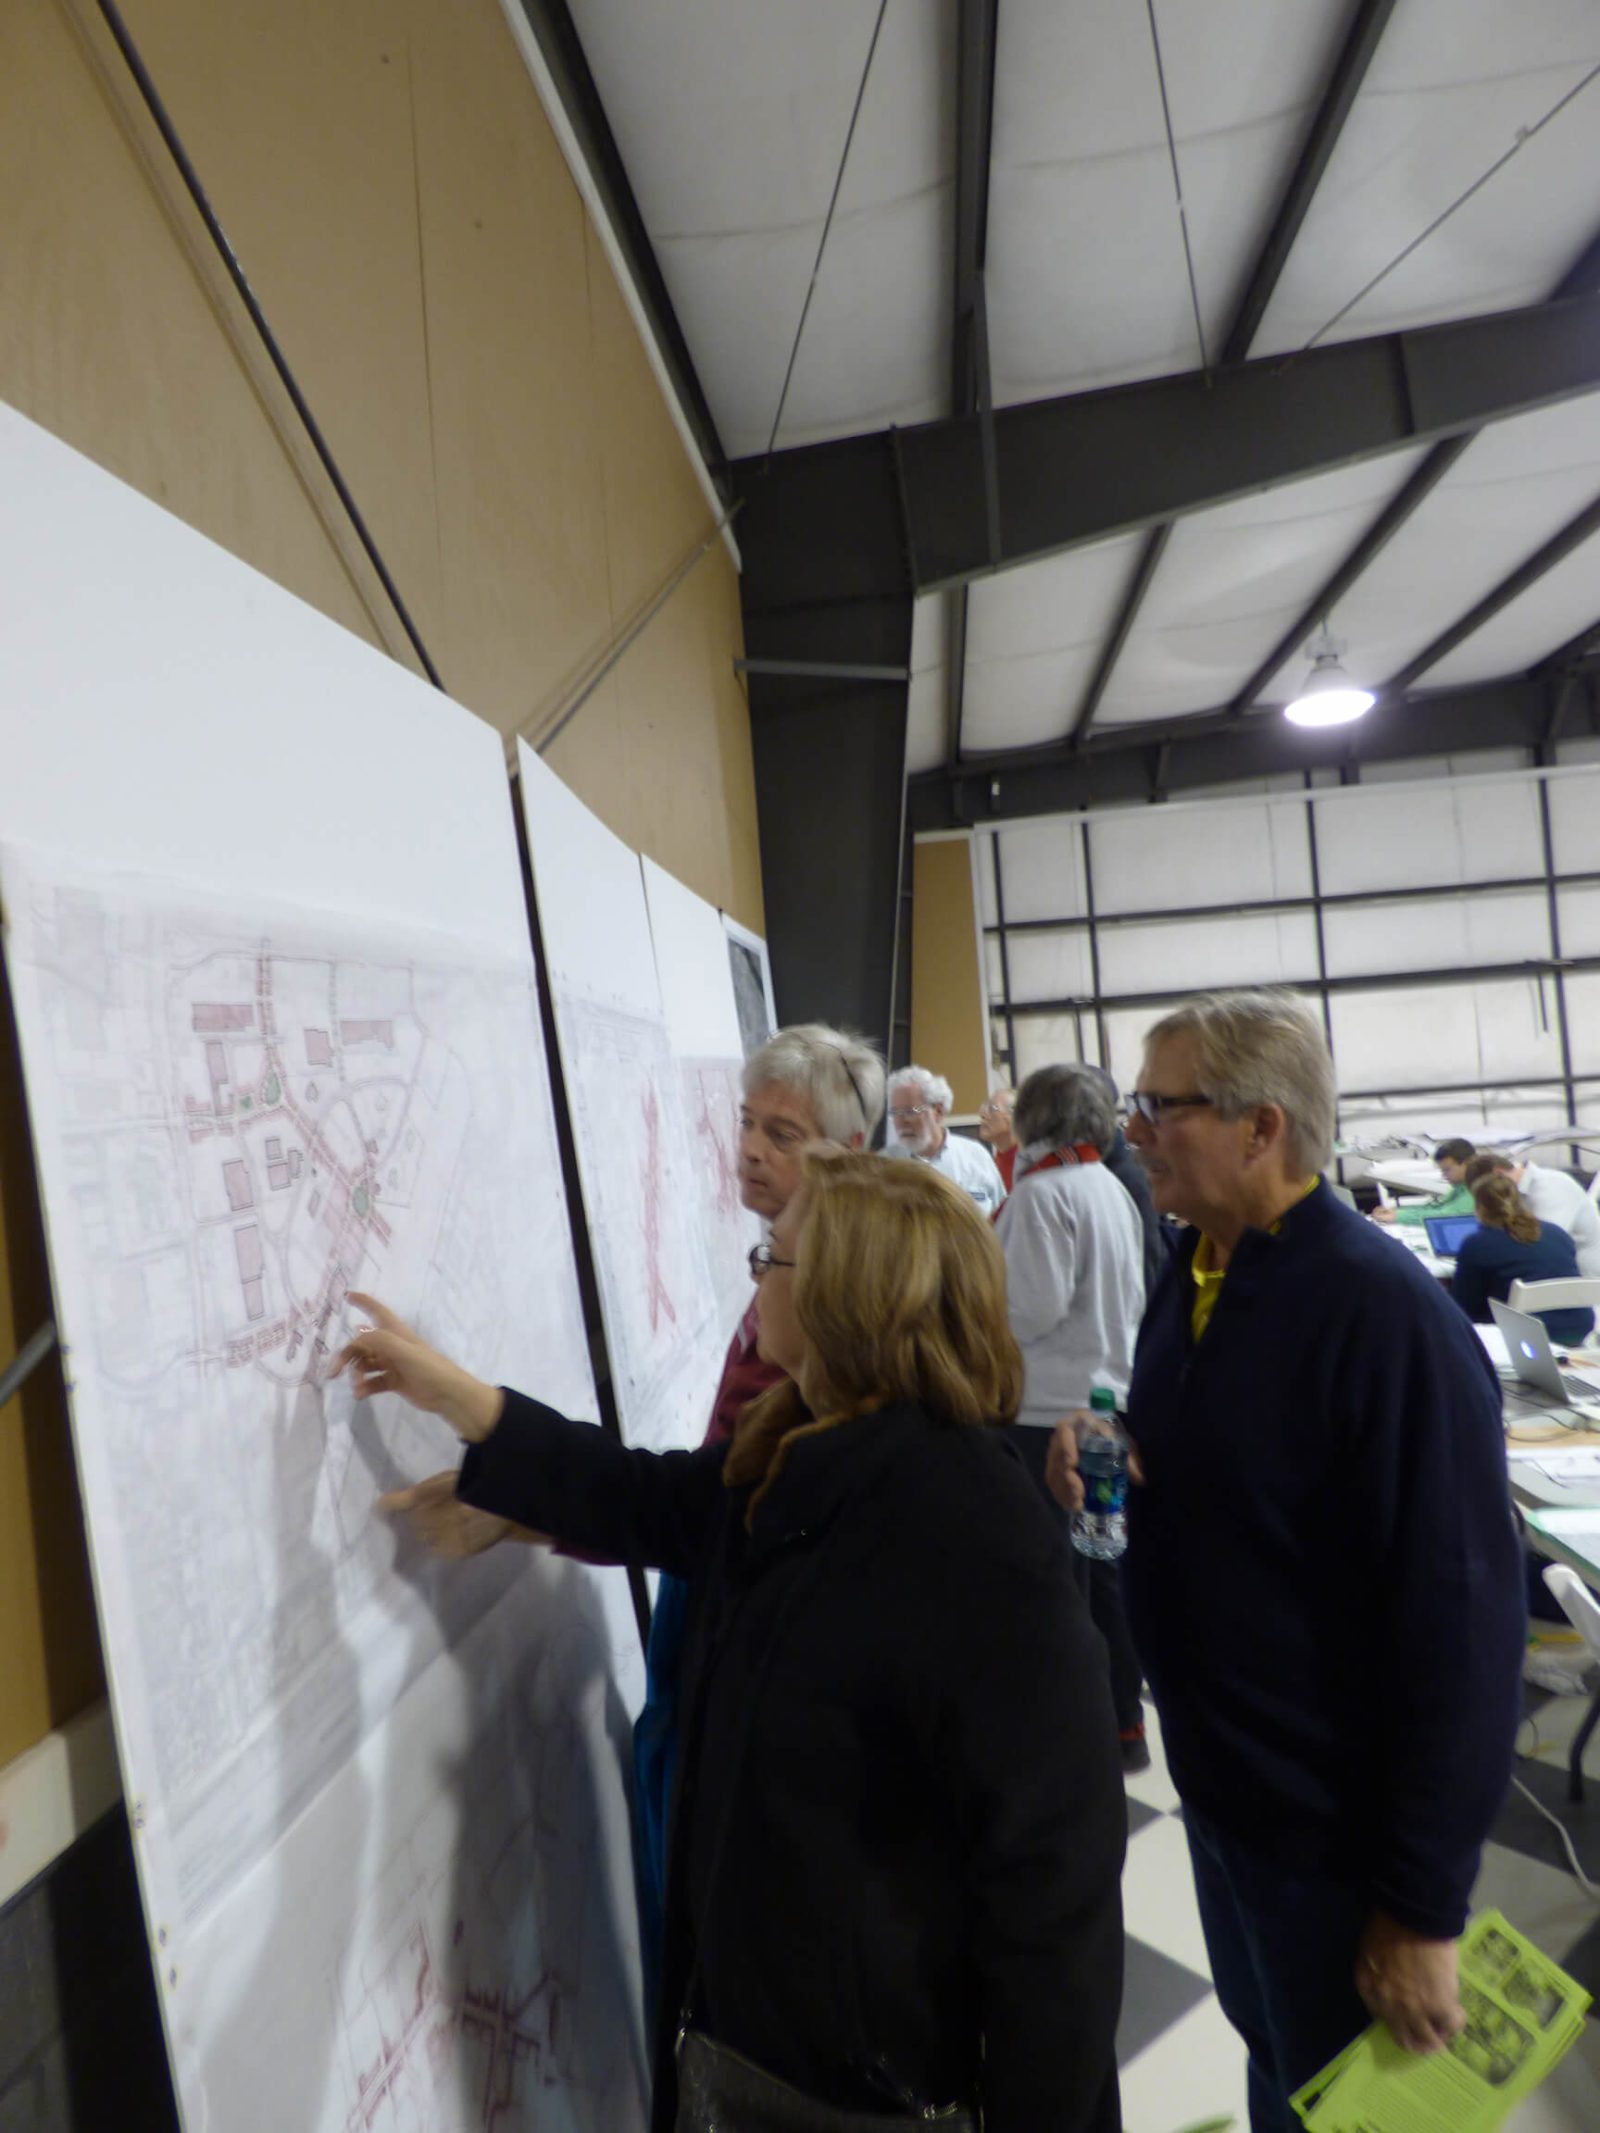 Audience members view and comment on plans during Vista Field Charrette.